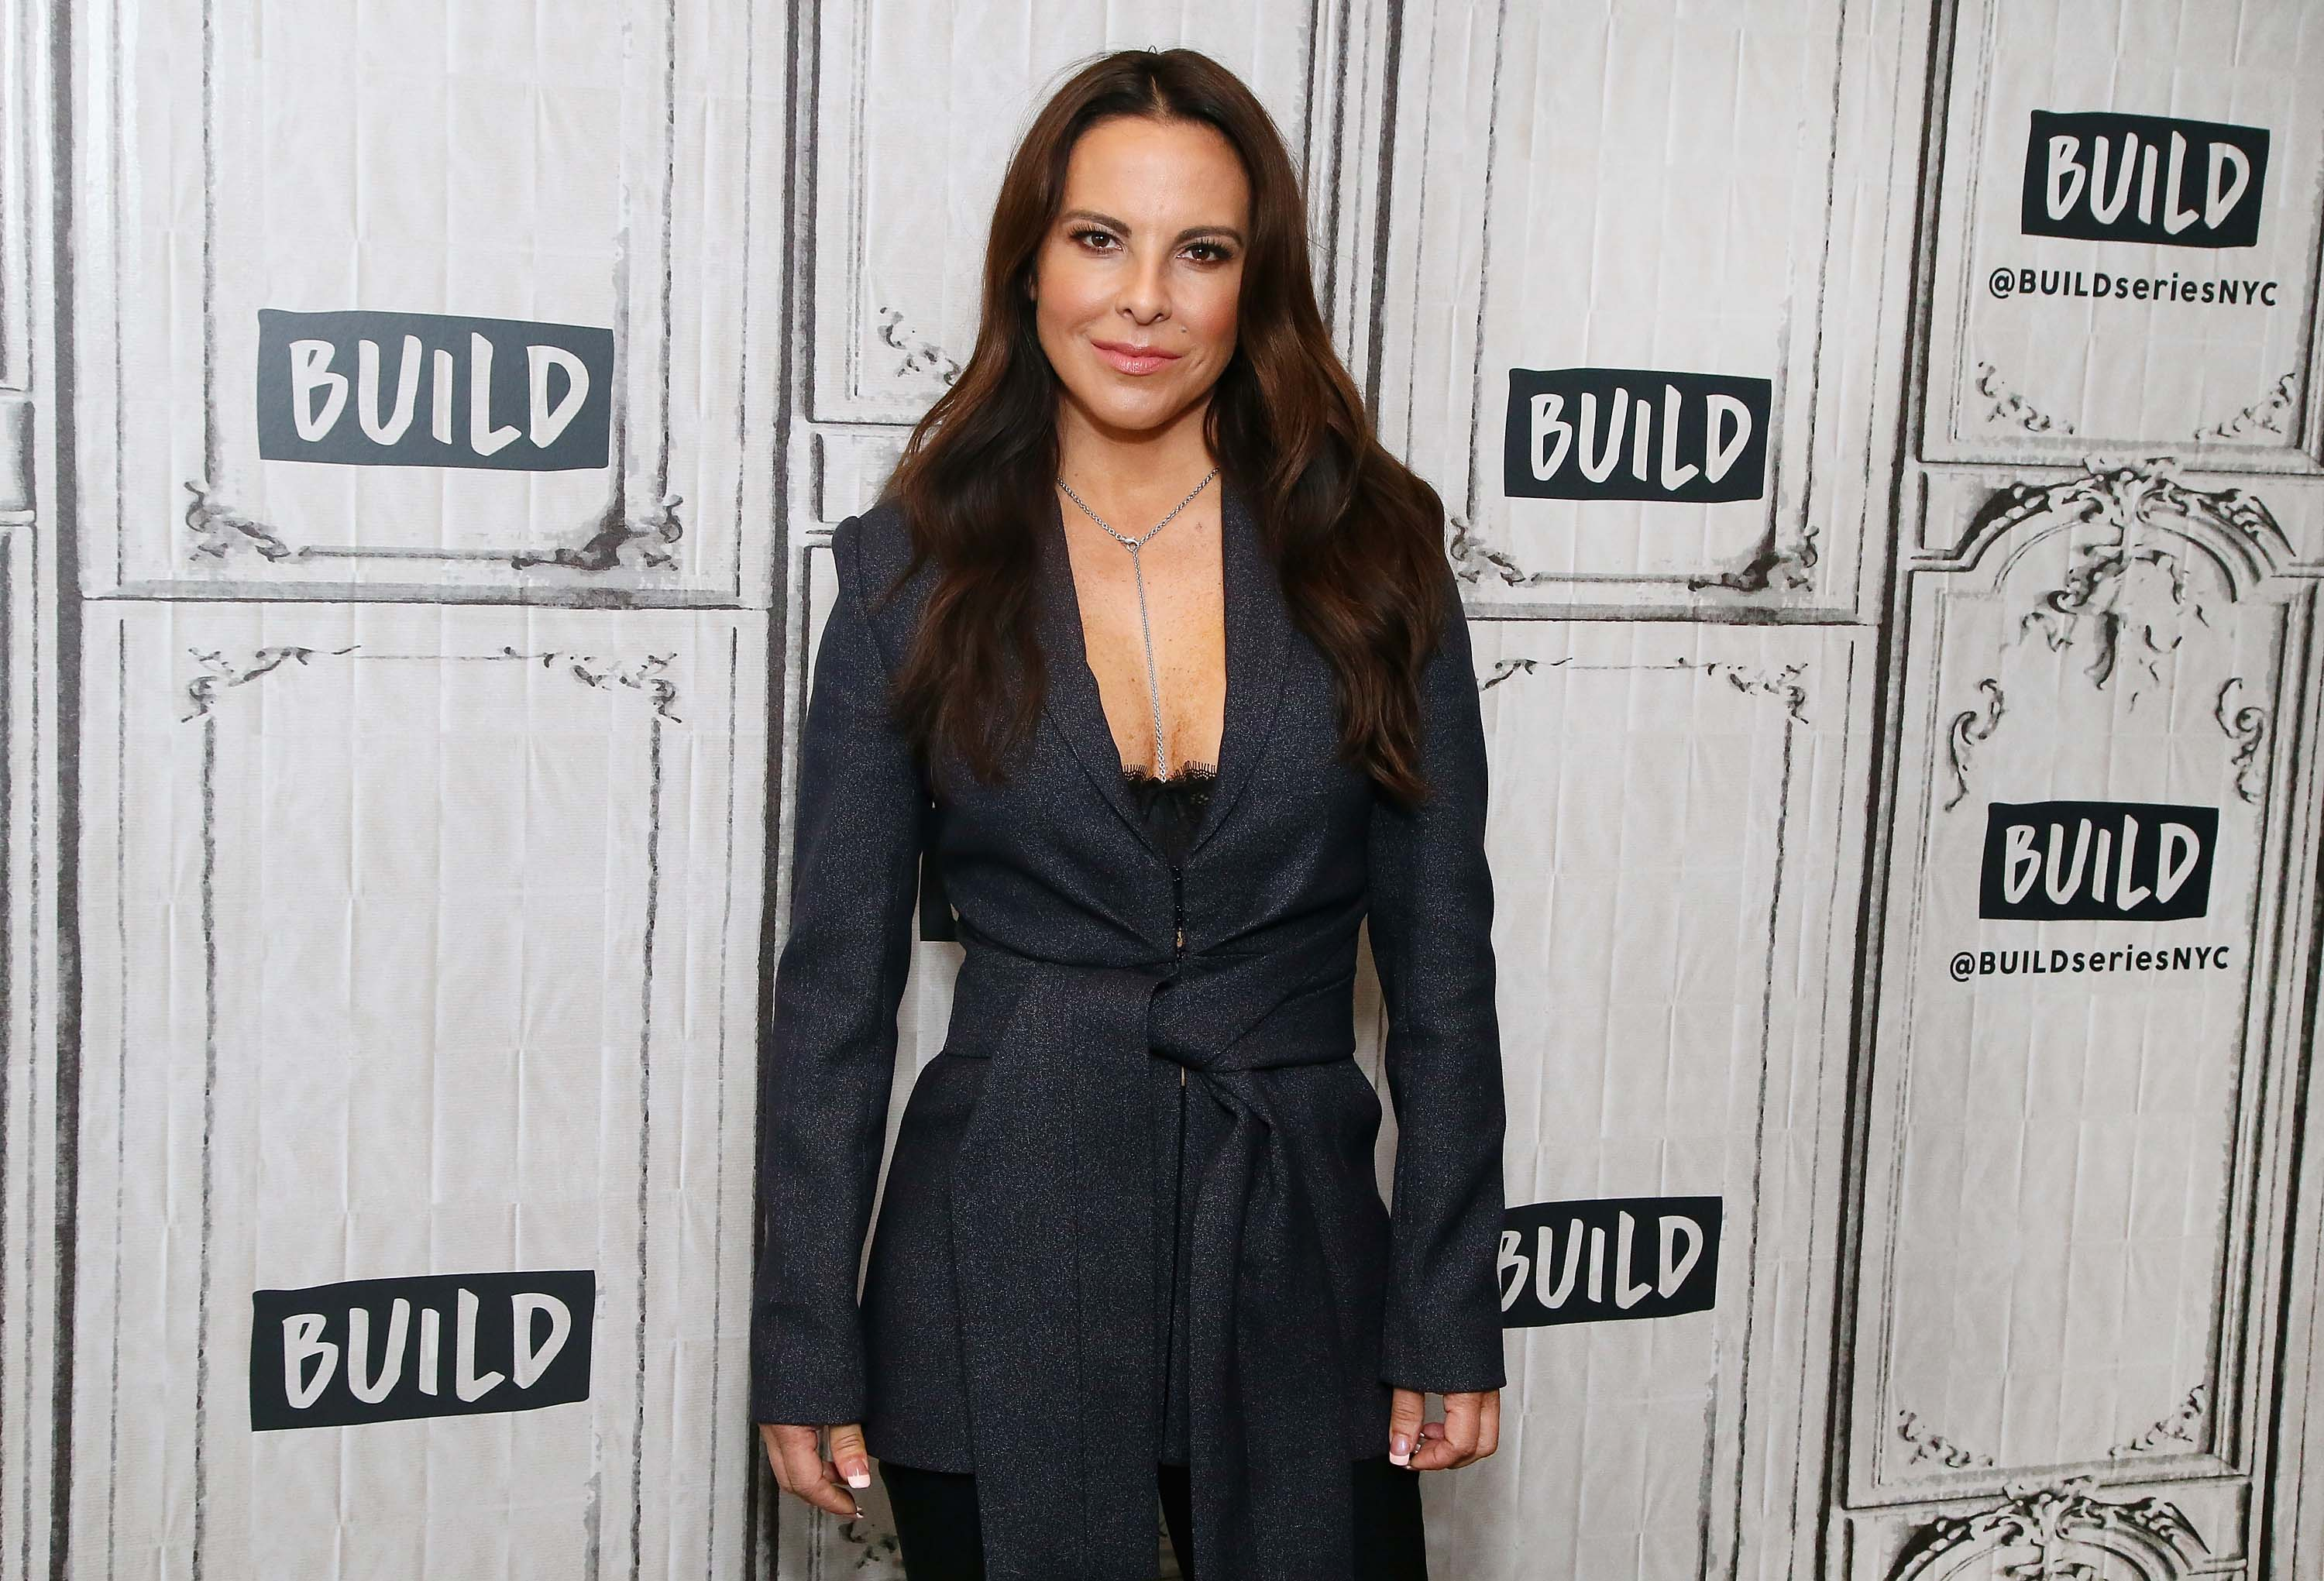 Ingobernable No Tendrá Temporada 3 Por Motivos Políticos Dice Kate Del Castillo